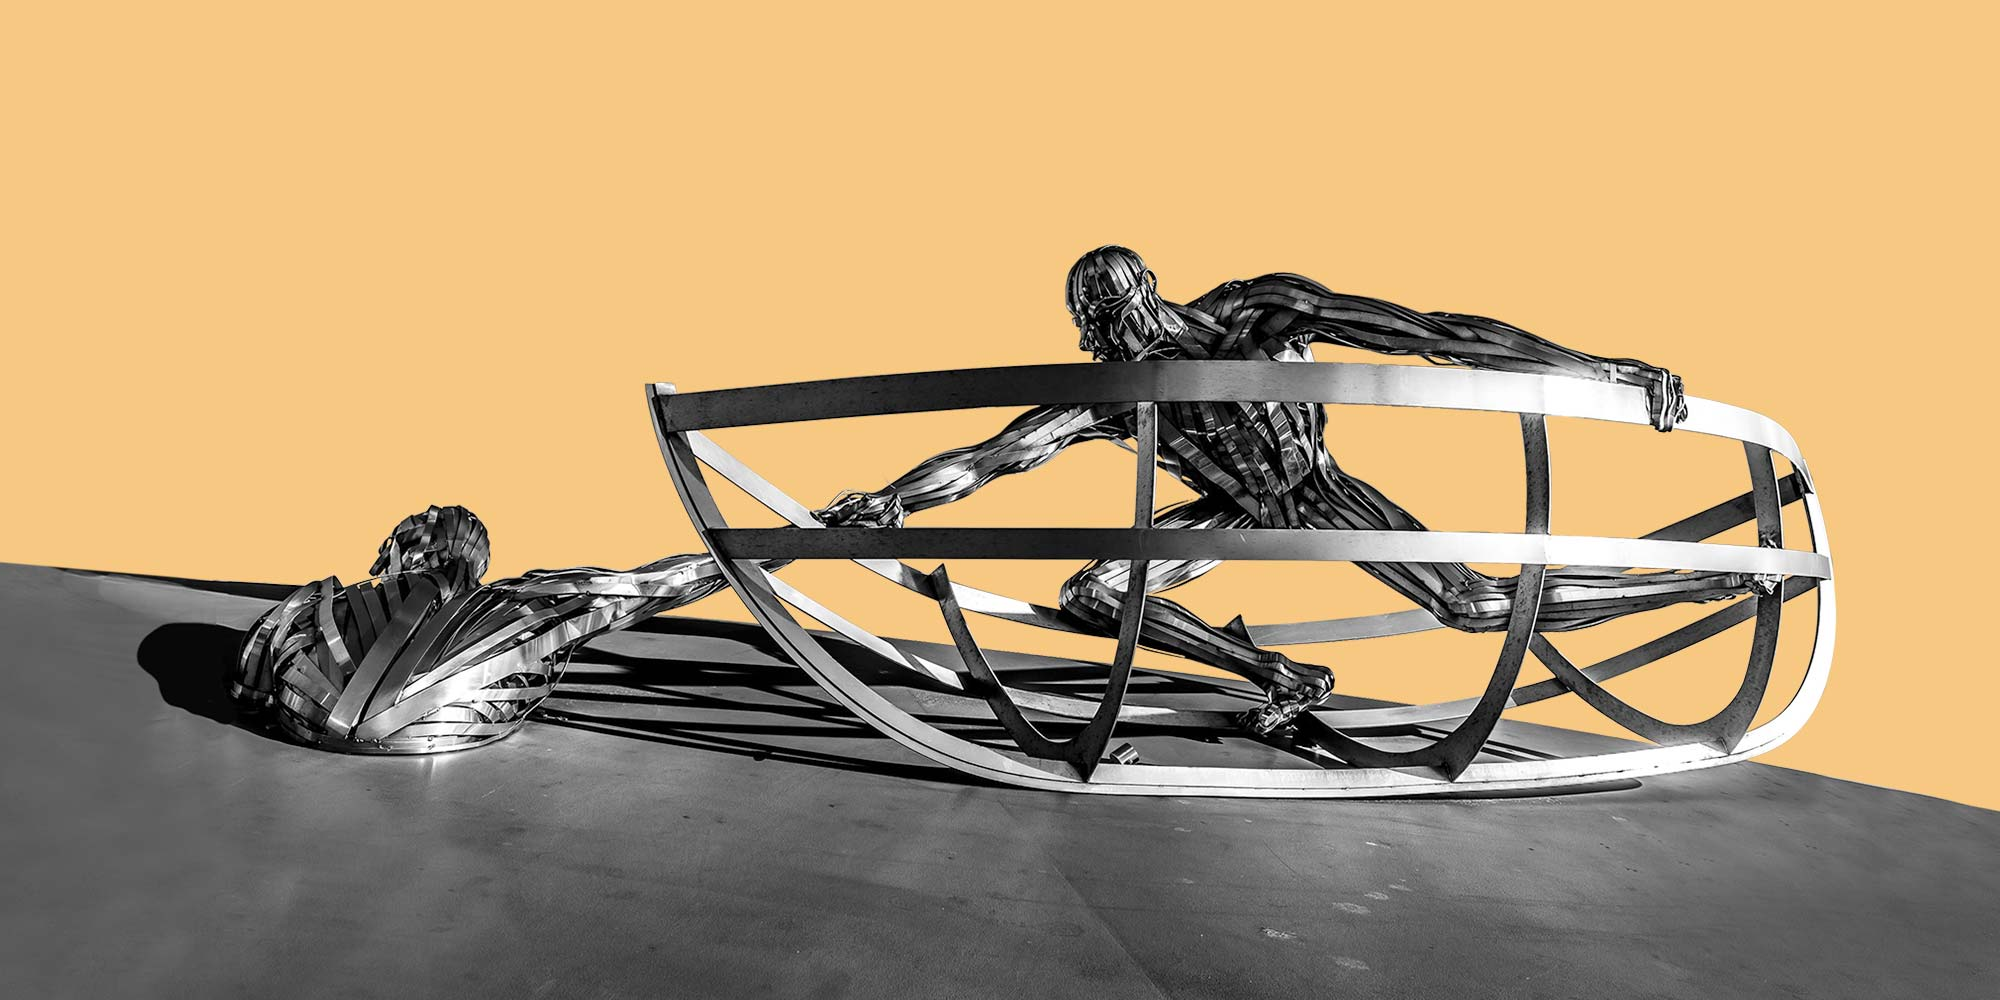 Metal sculpture of a person in a boat lifting a second person from the water. Harm Reduction